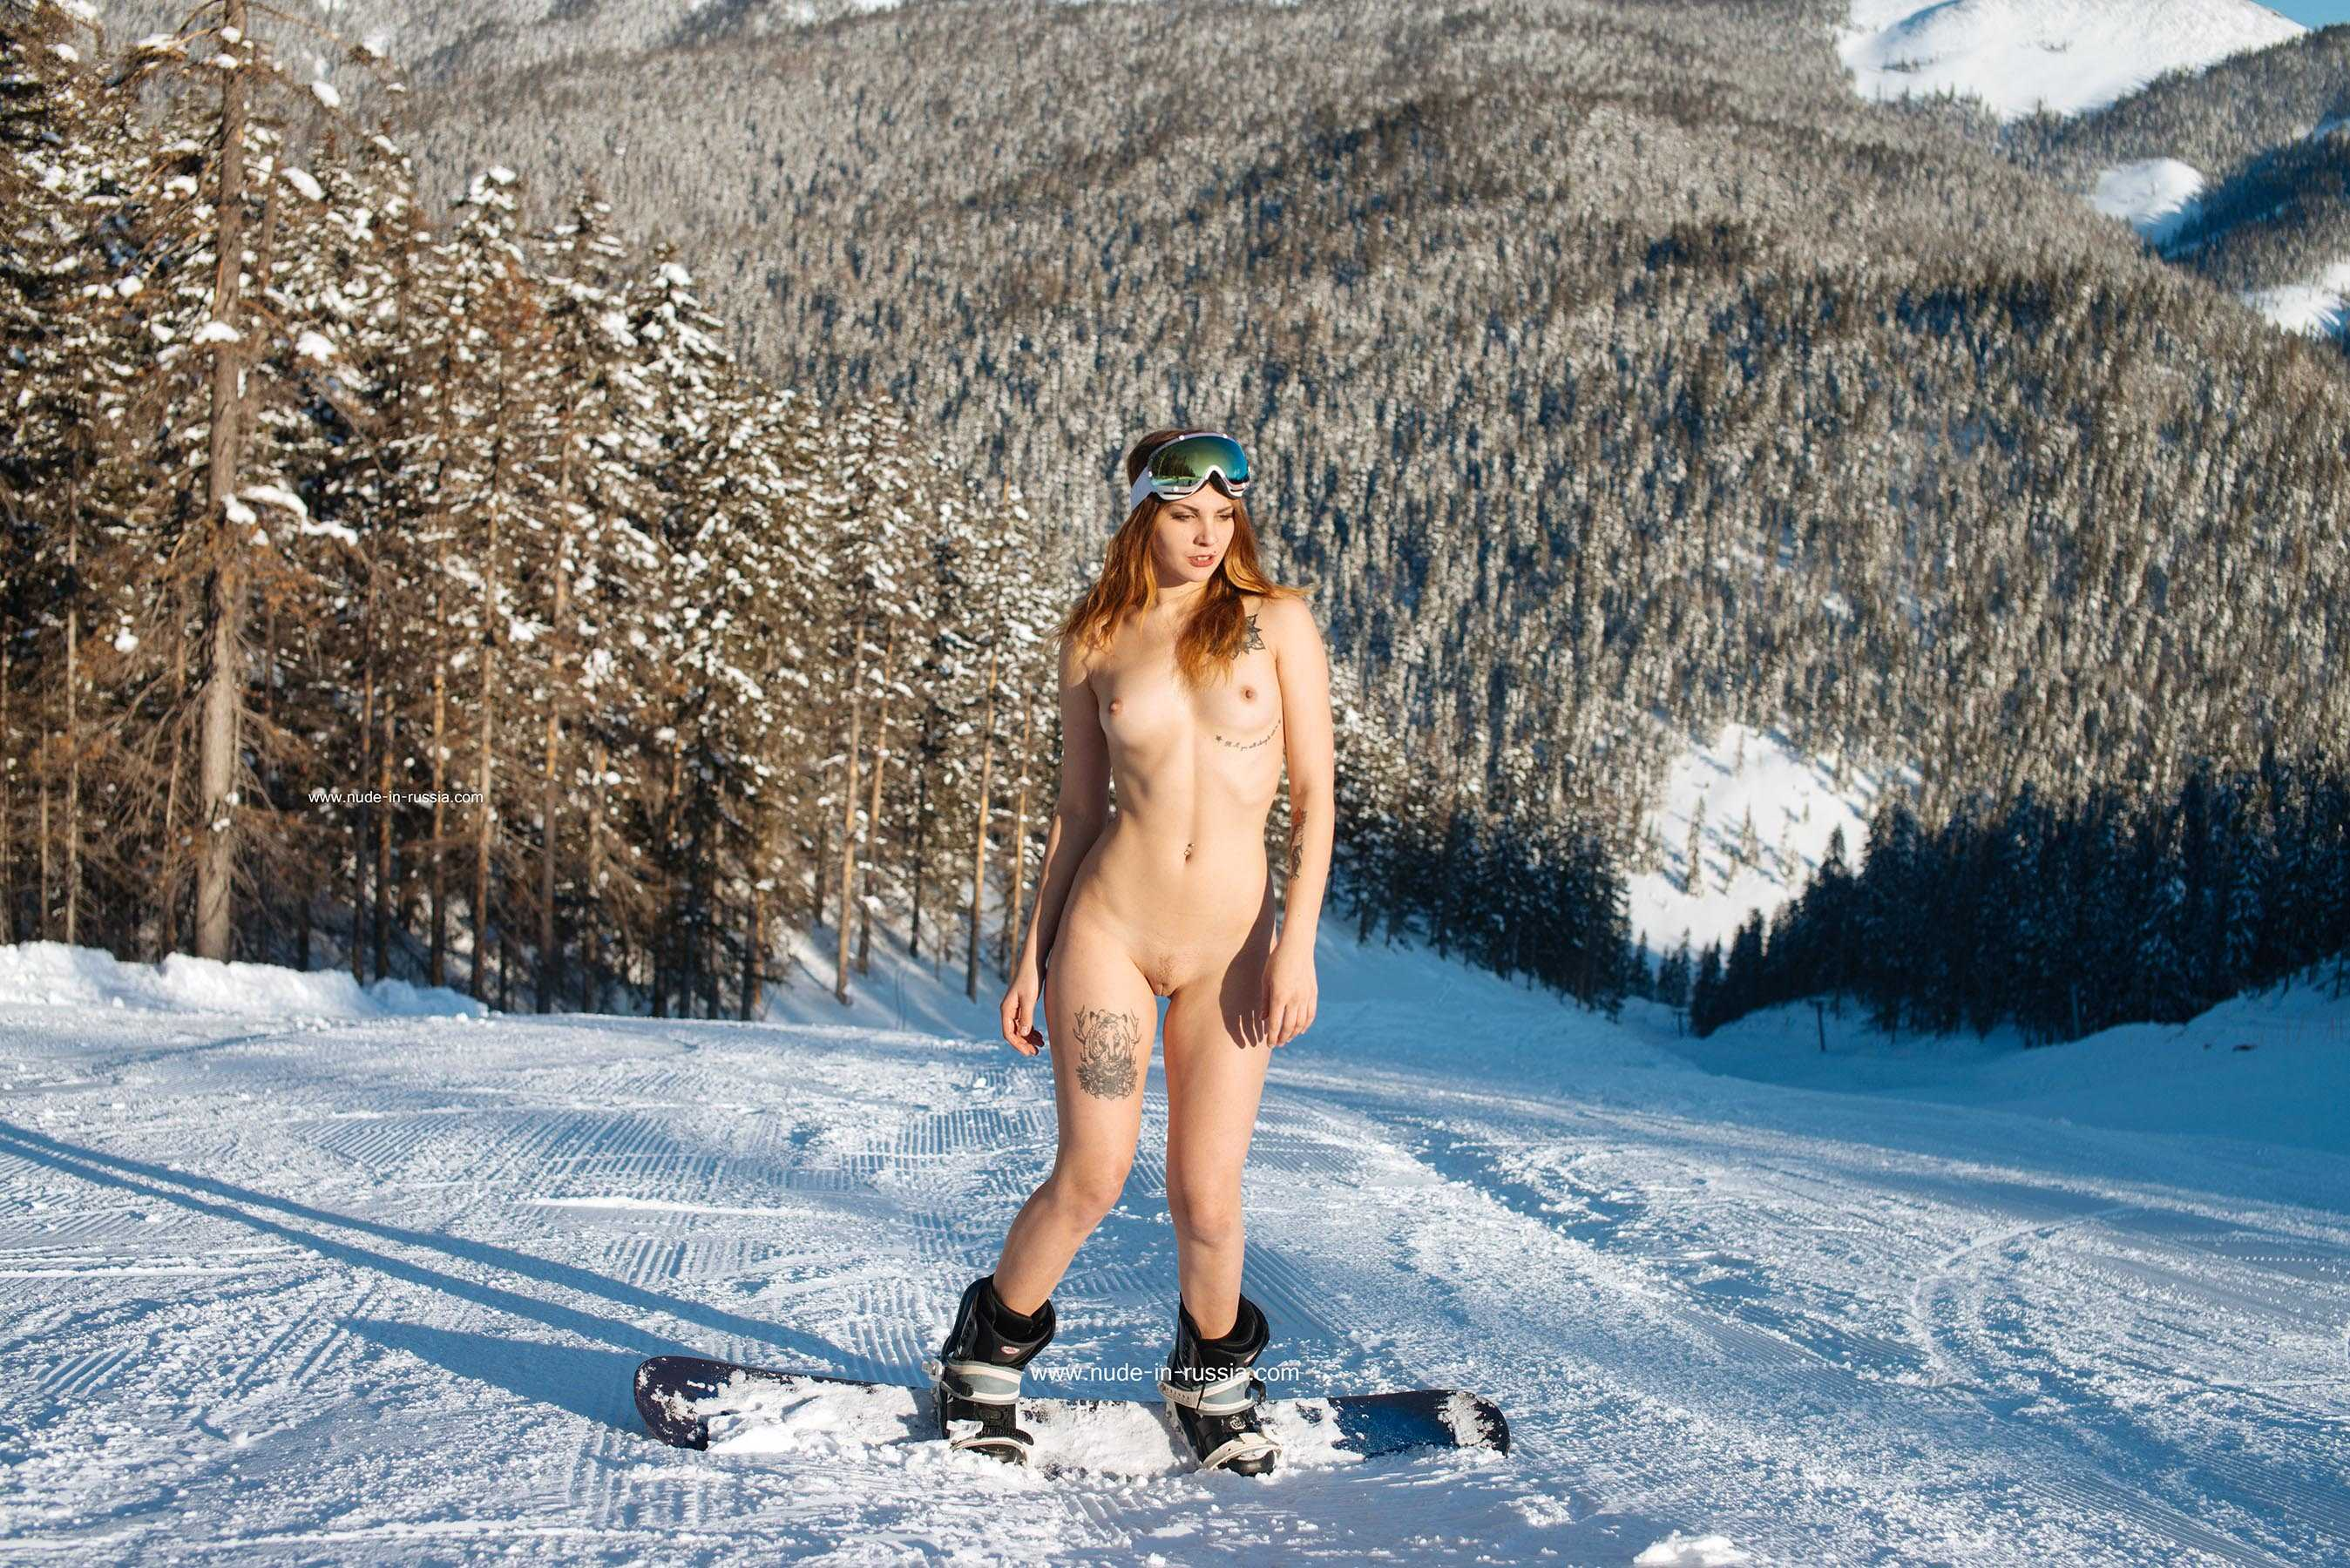 Hotheaded Naked Ice Borer